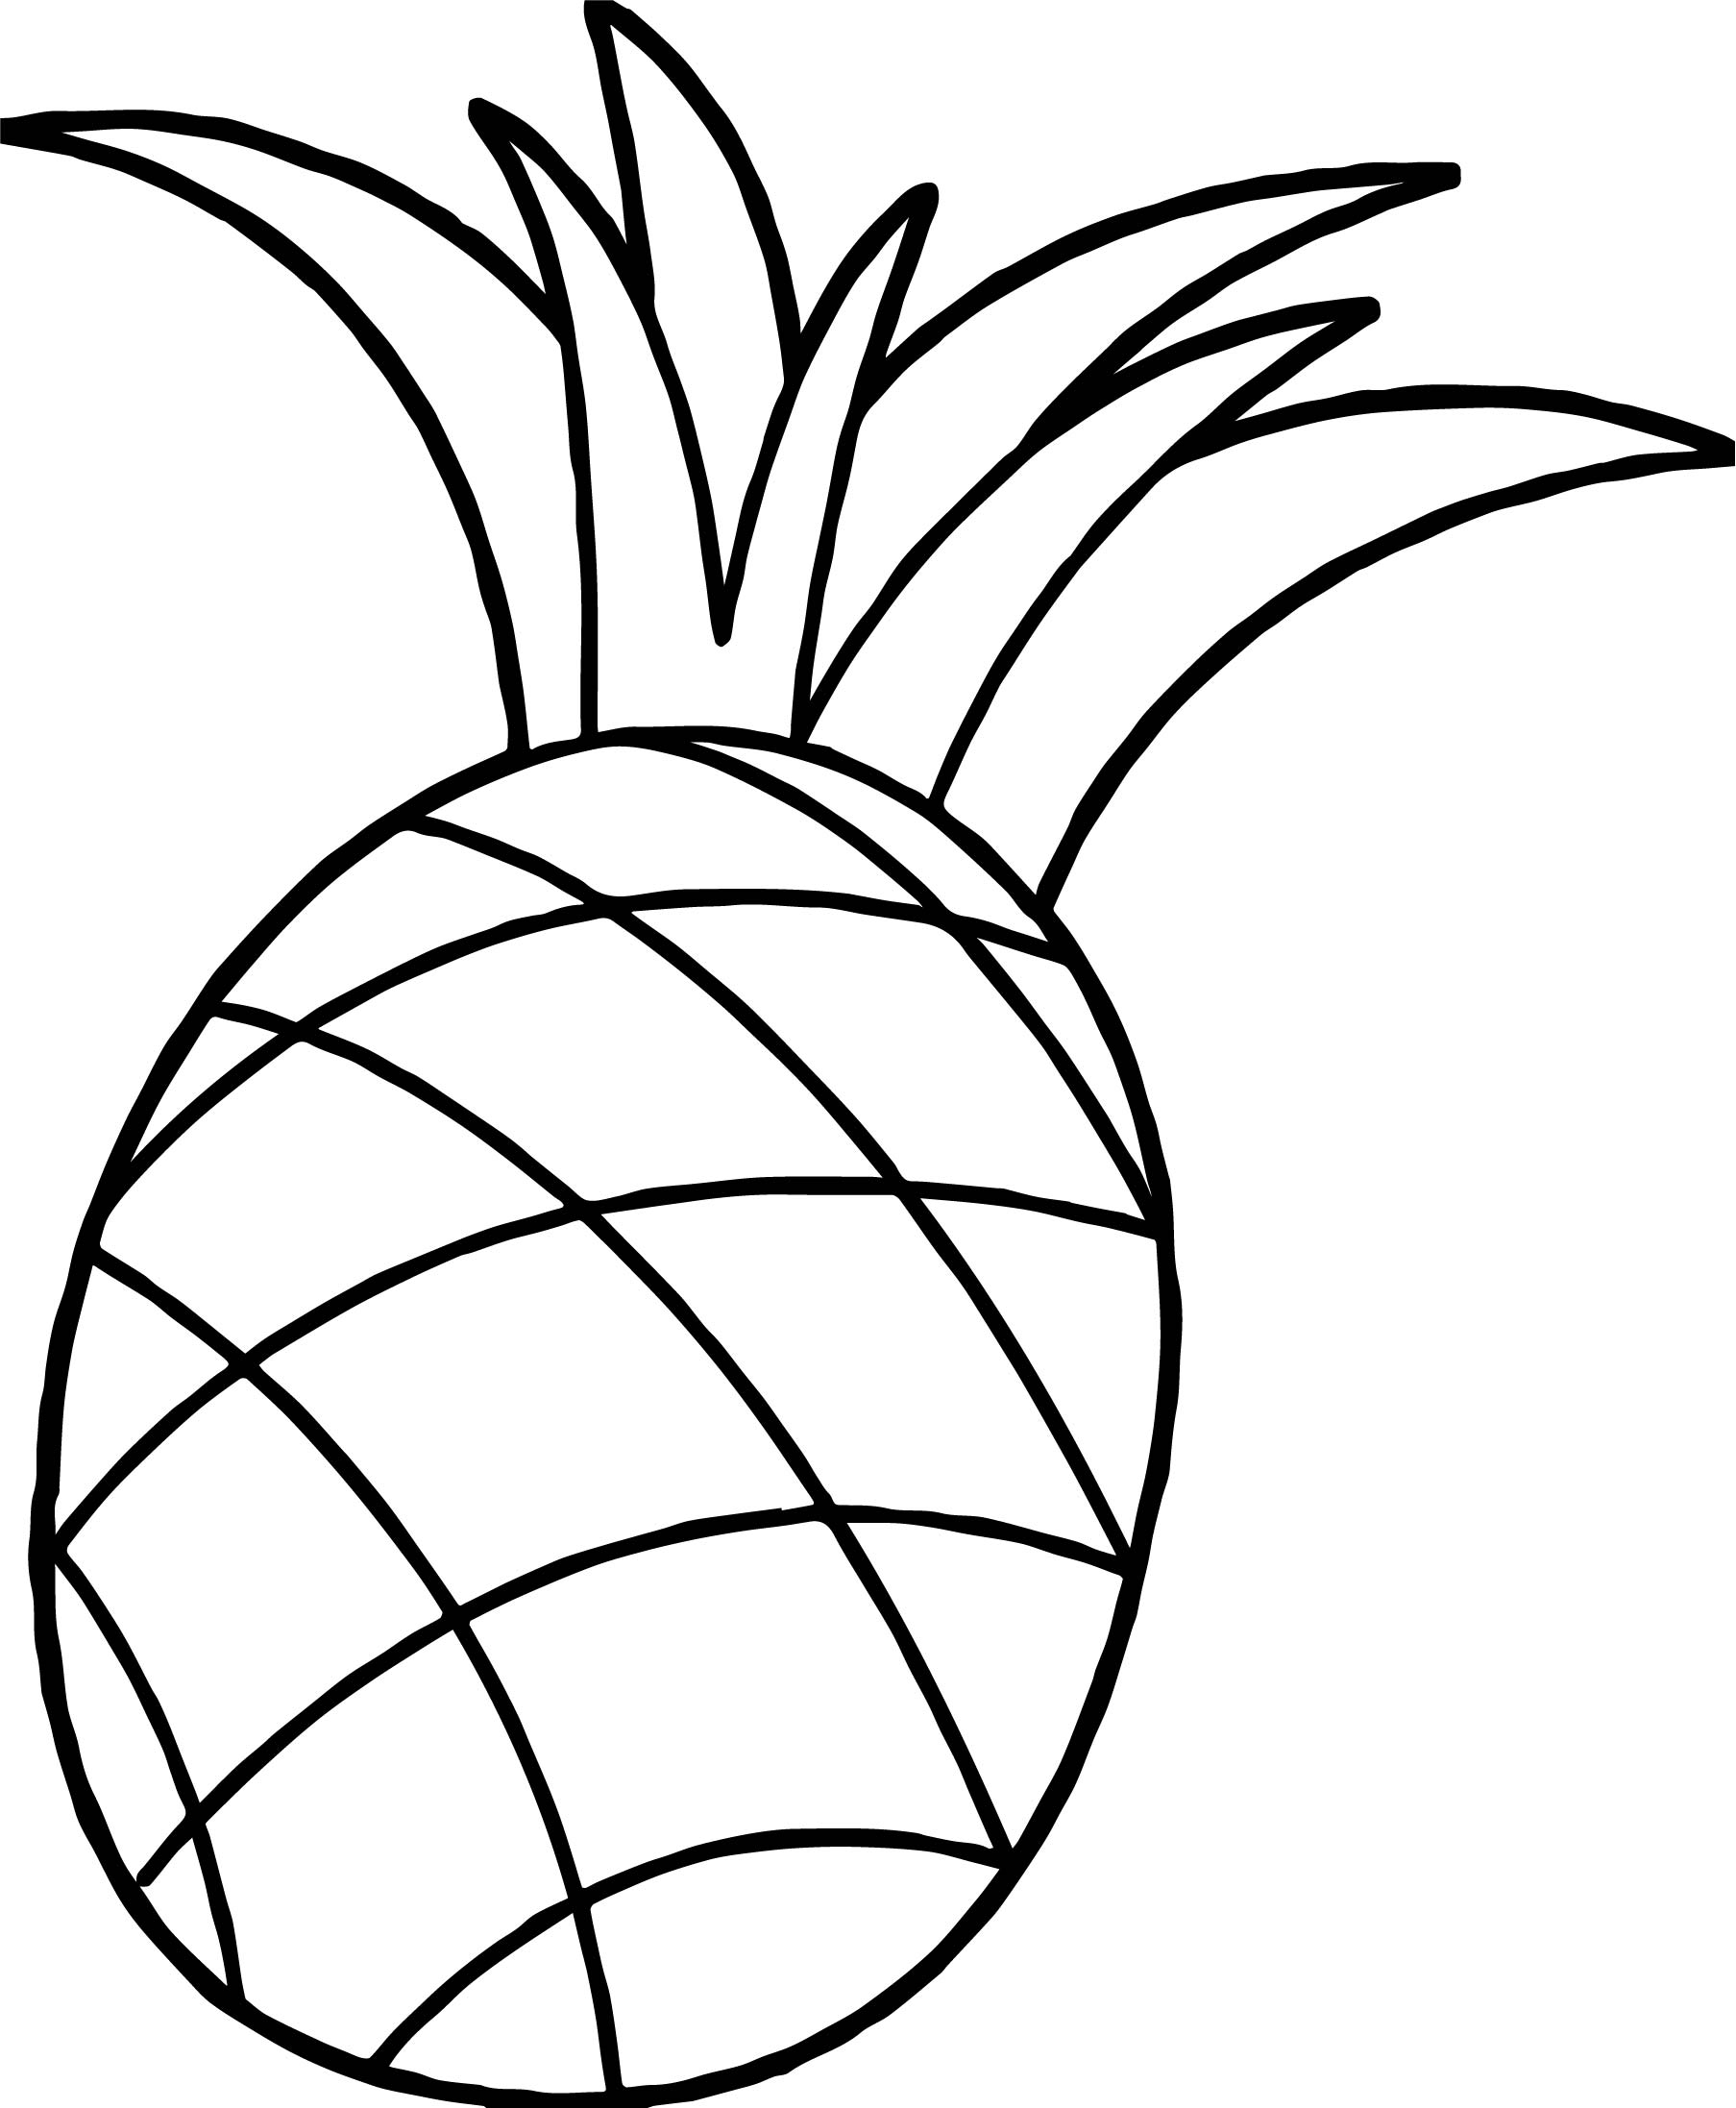 One Pineapple Coloring Page Wecoloringpage